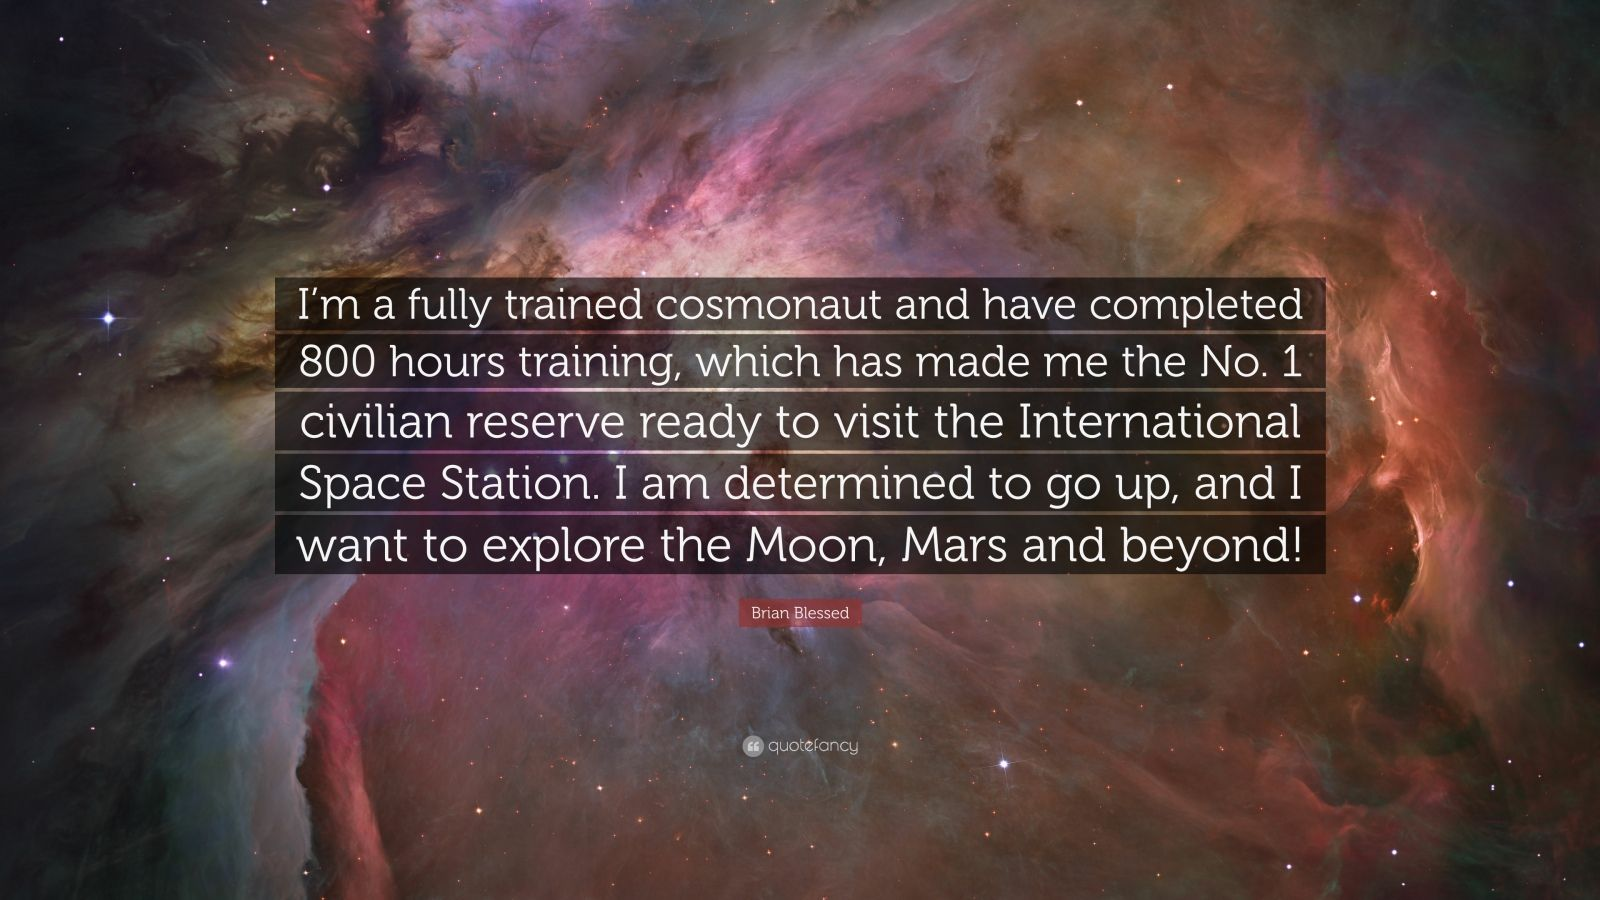 """Brian Blessed Quote: """"I'm a fully trained cosmonaut and have completed 800 hours training, which has made me the No. 1 civilian reserve ready to visit the International Space Station. I am determined to go up, and I want to explore the Moon, Mars and beyond!"""""""